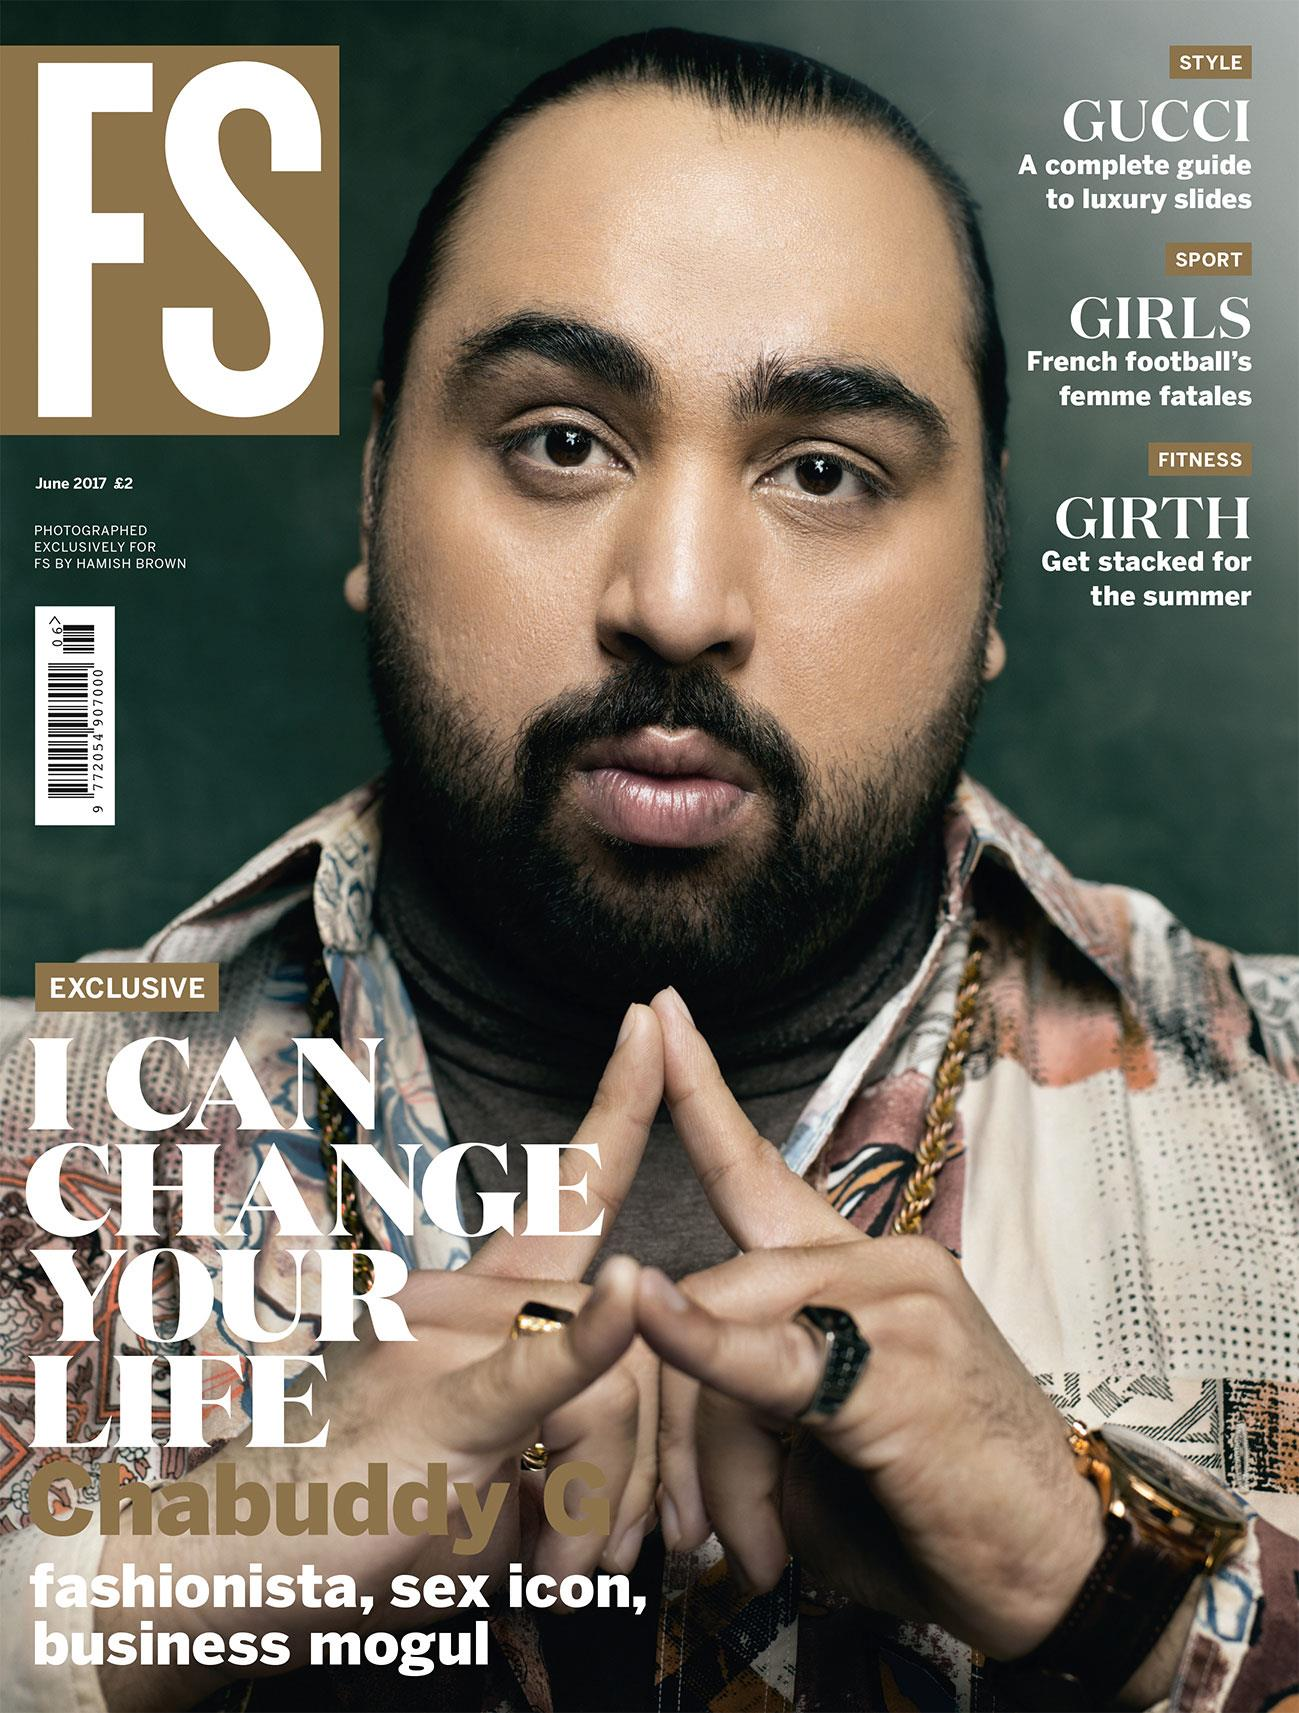 Chabuddy G on the cover of FS magazine June 2017 ()